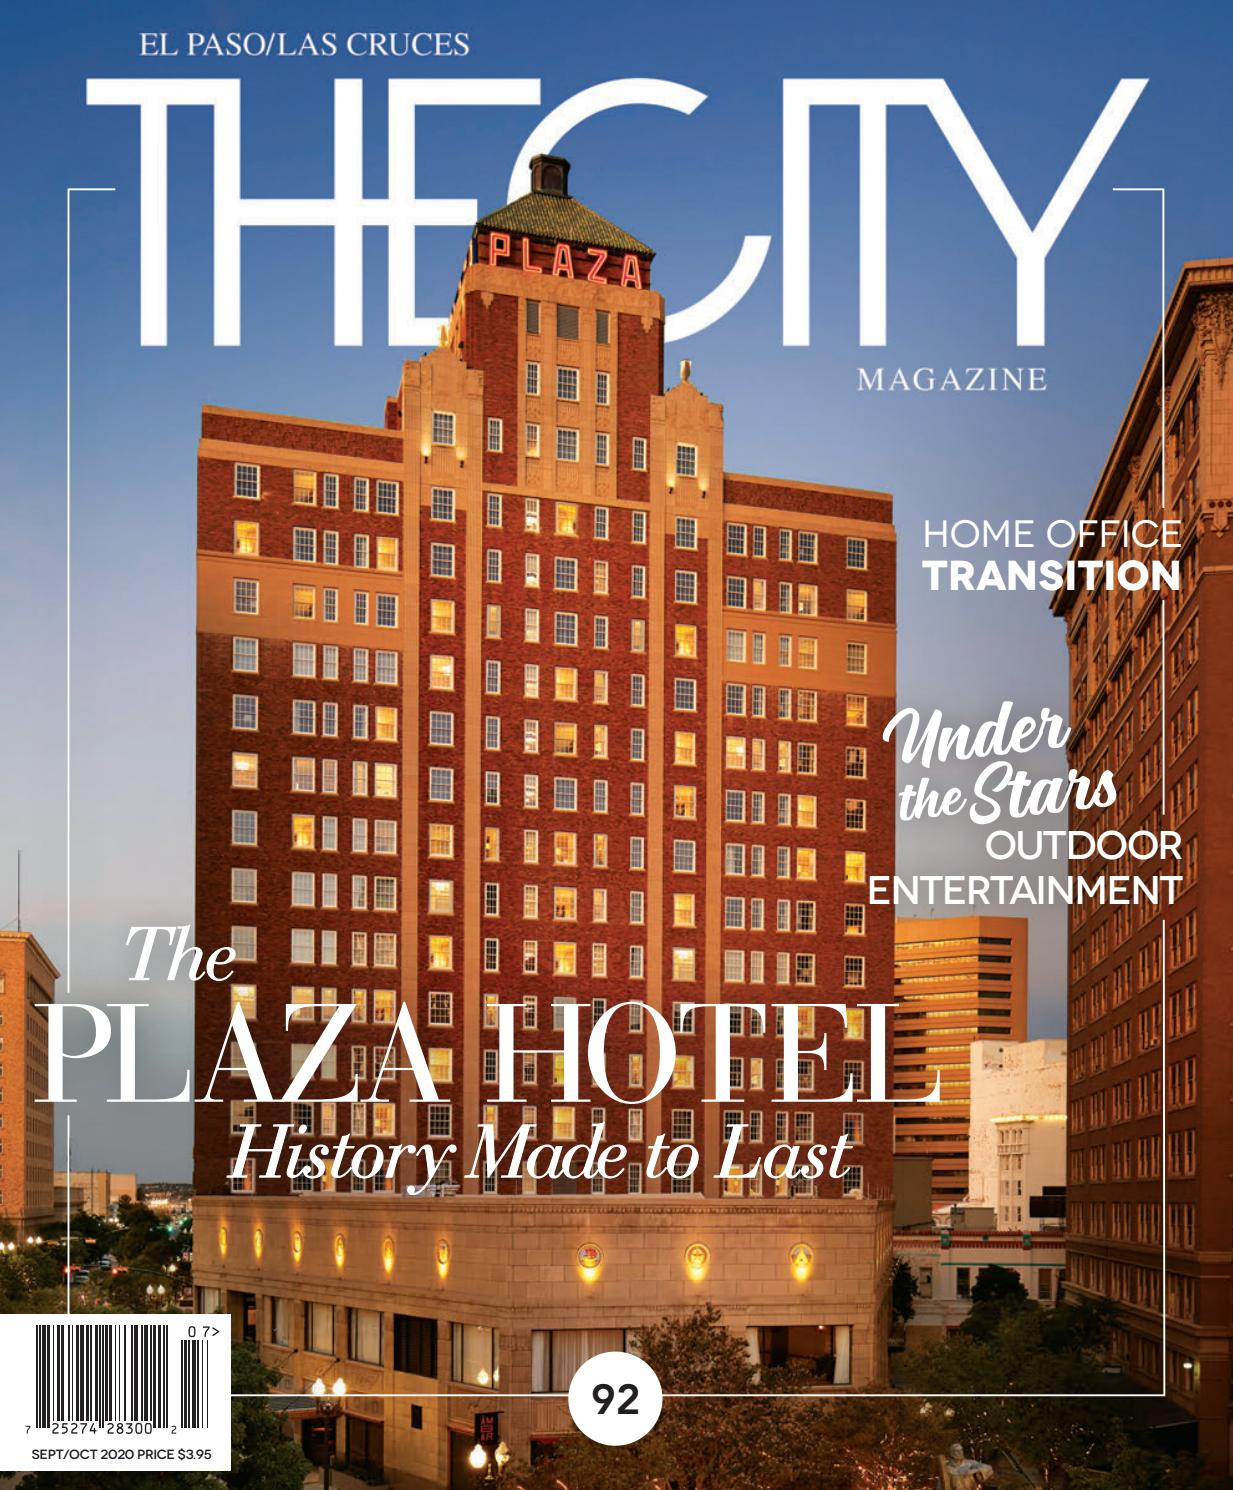 The City Magazine El Paso September October 2020 By Thecity Magazine El Paso Las Cruces Issuu